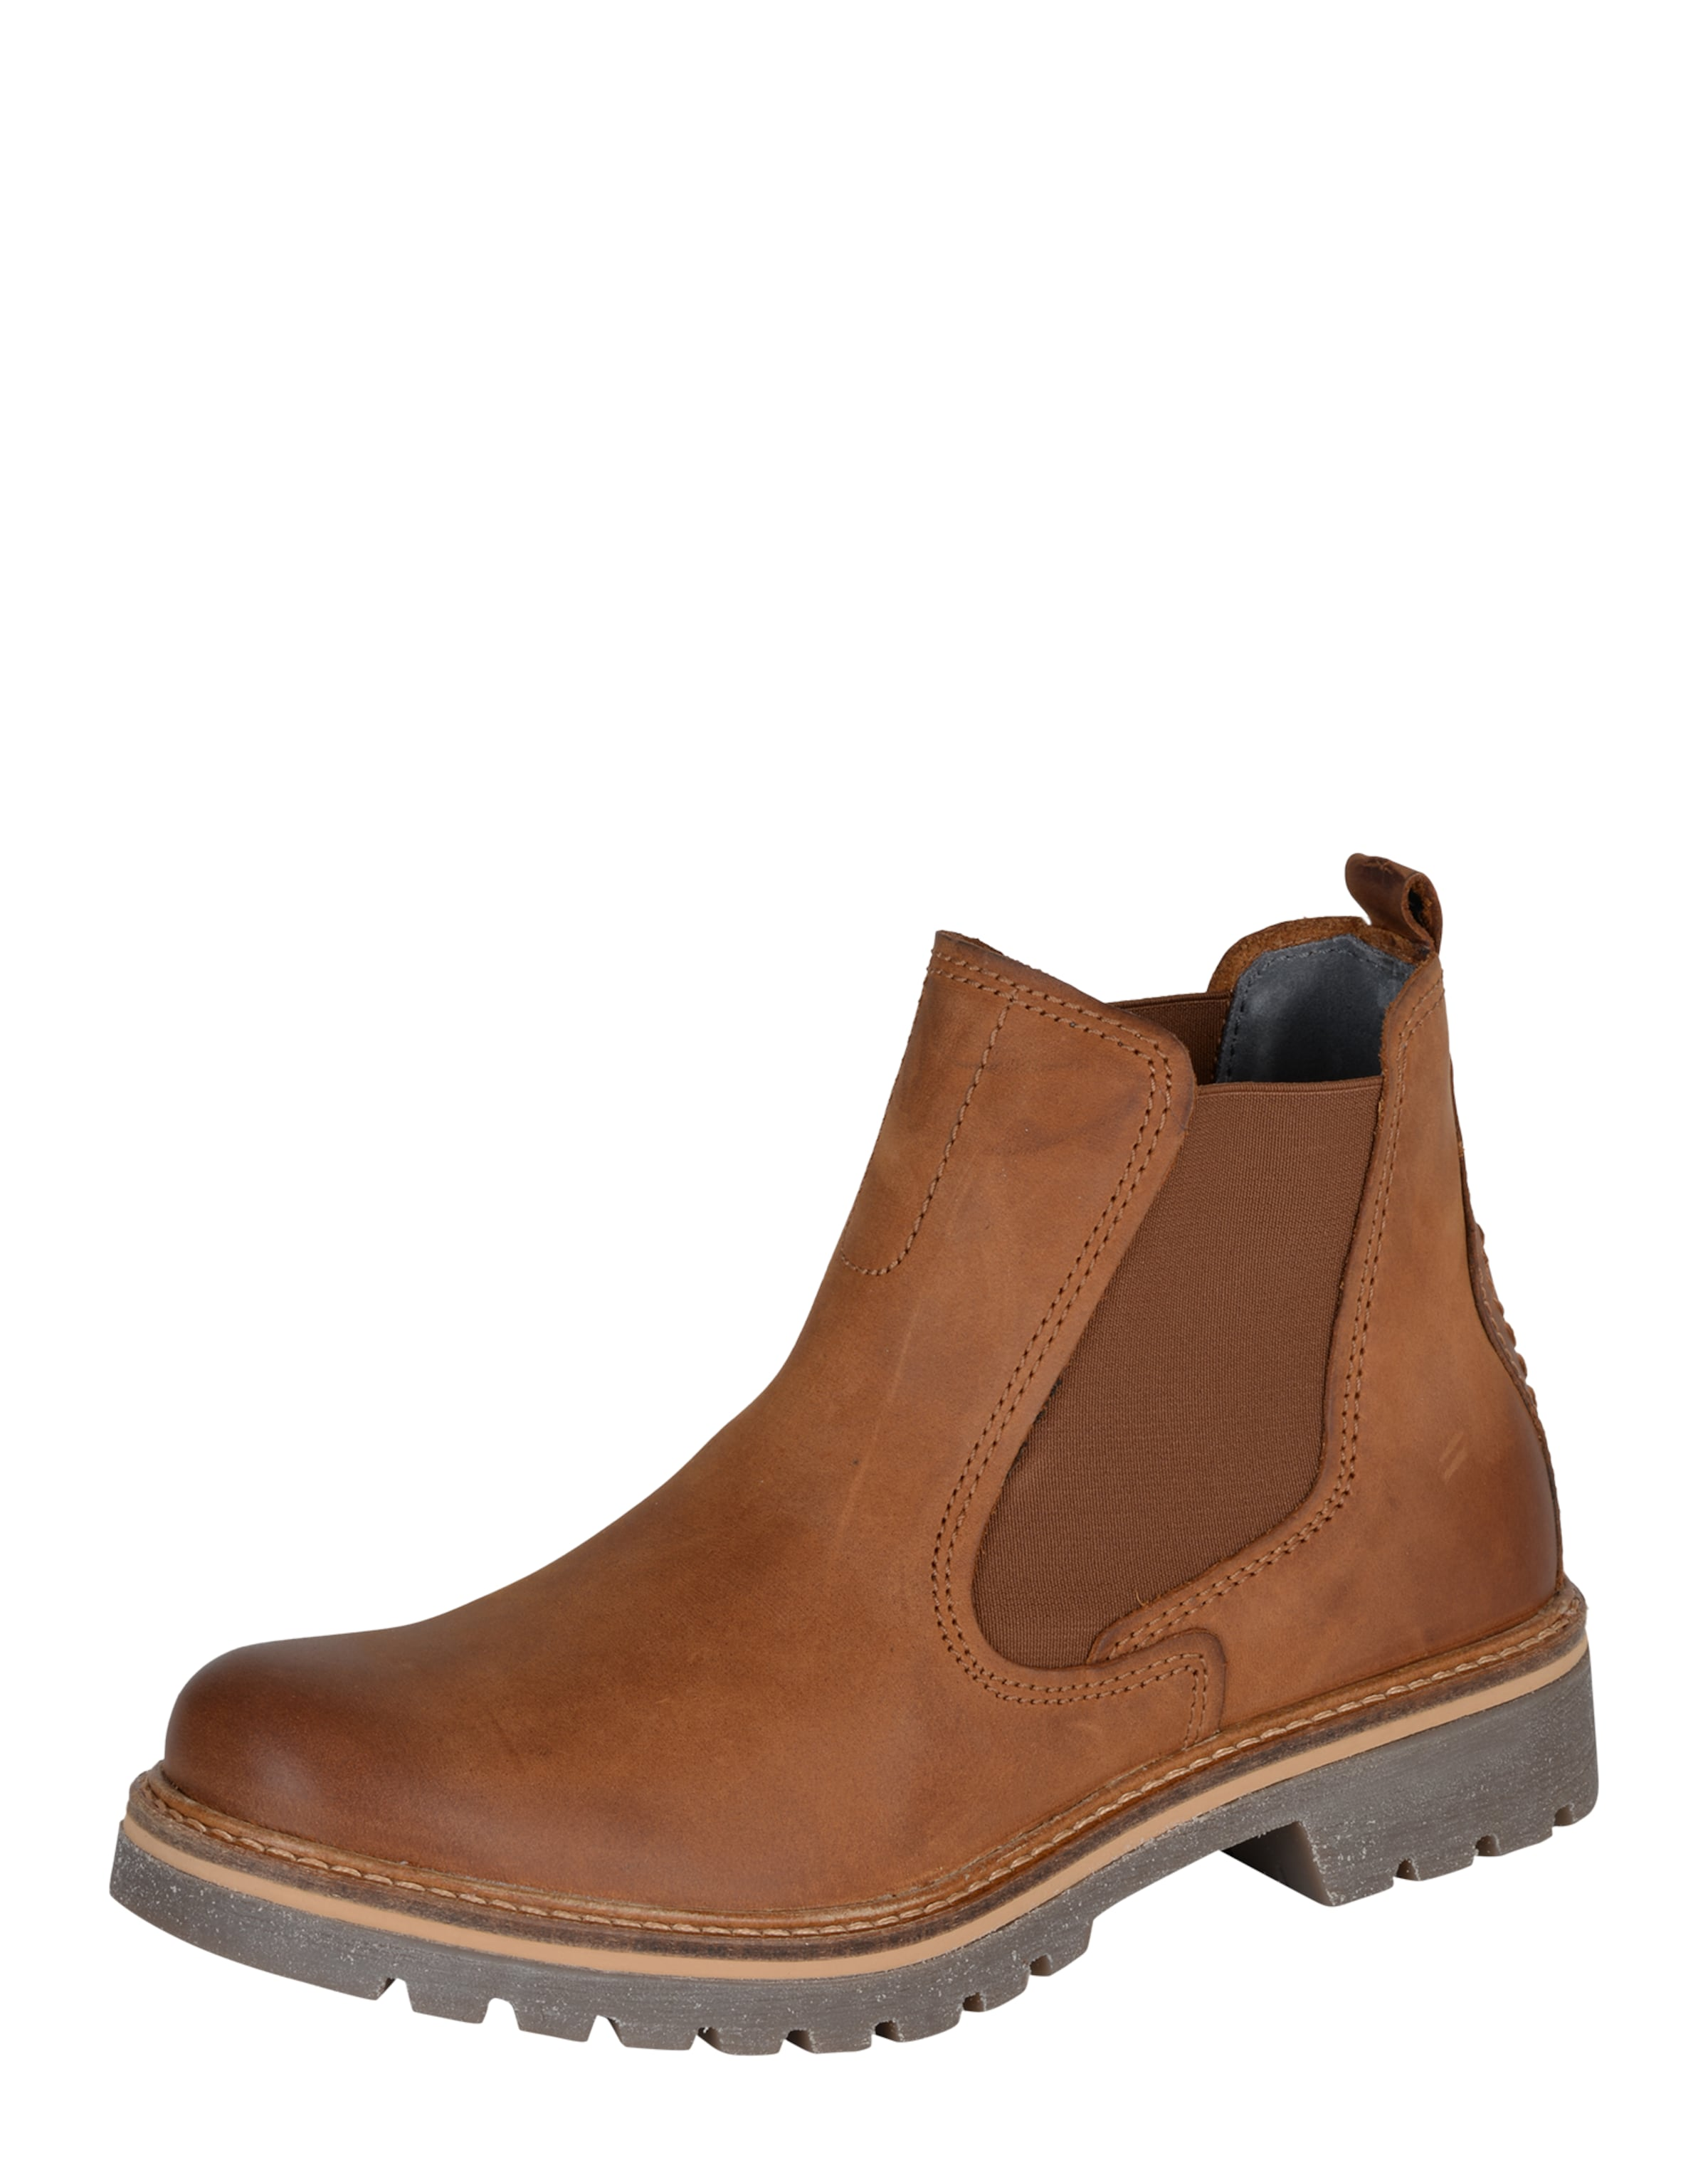 CAMEL ACTIVE Chelsea Stiefel 'Canberra' in braun